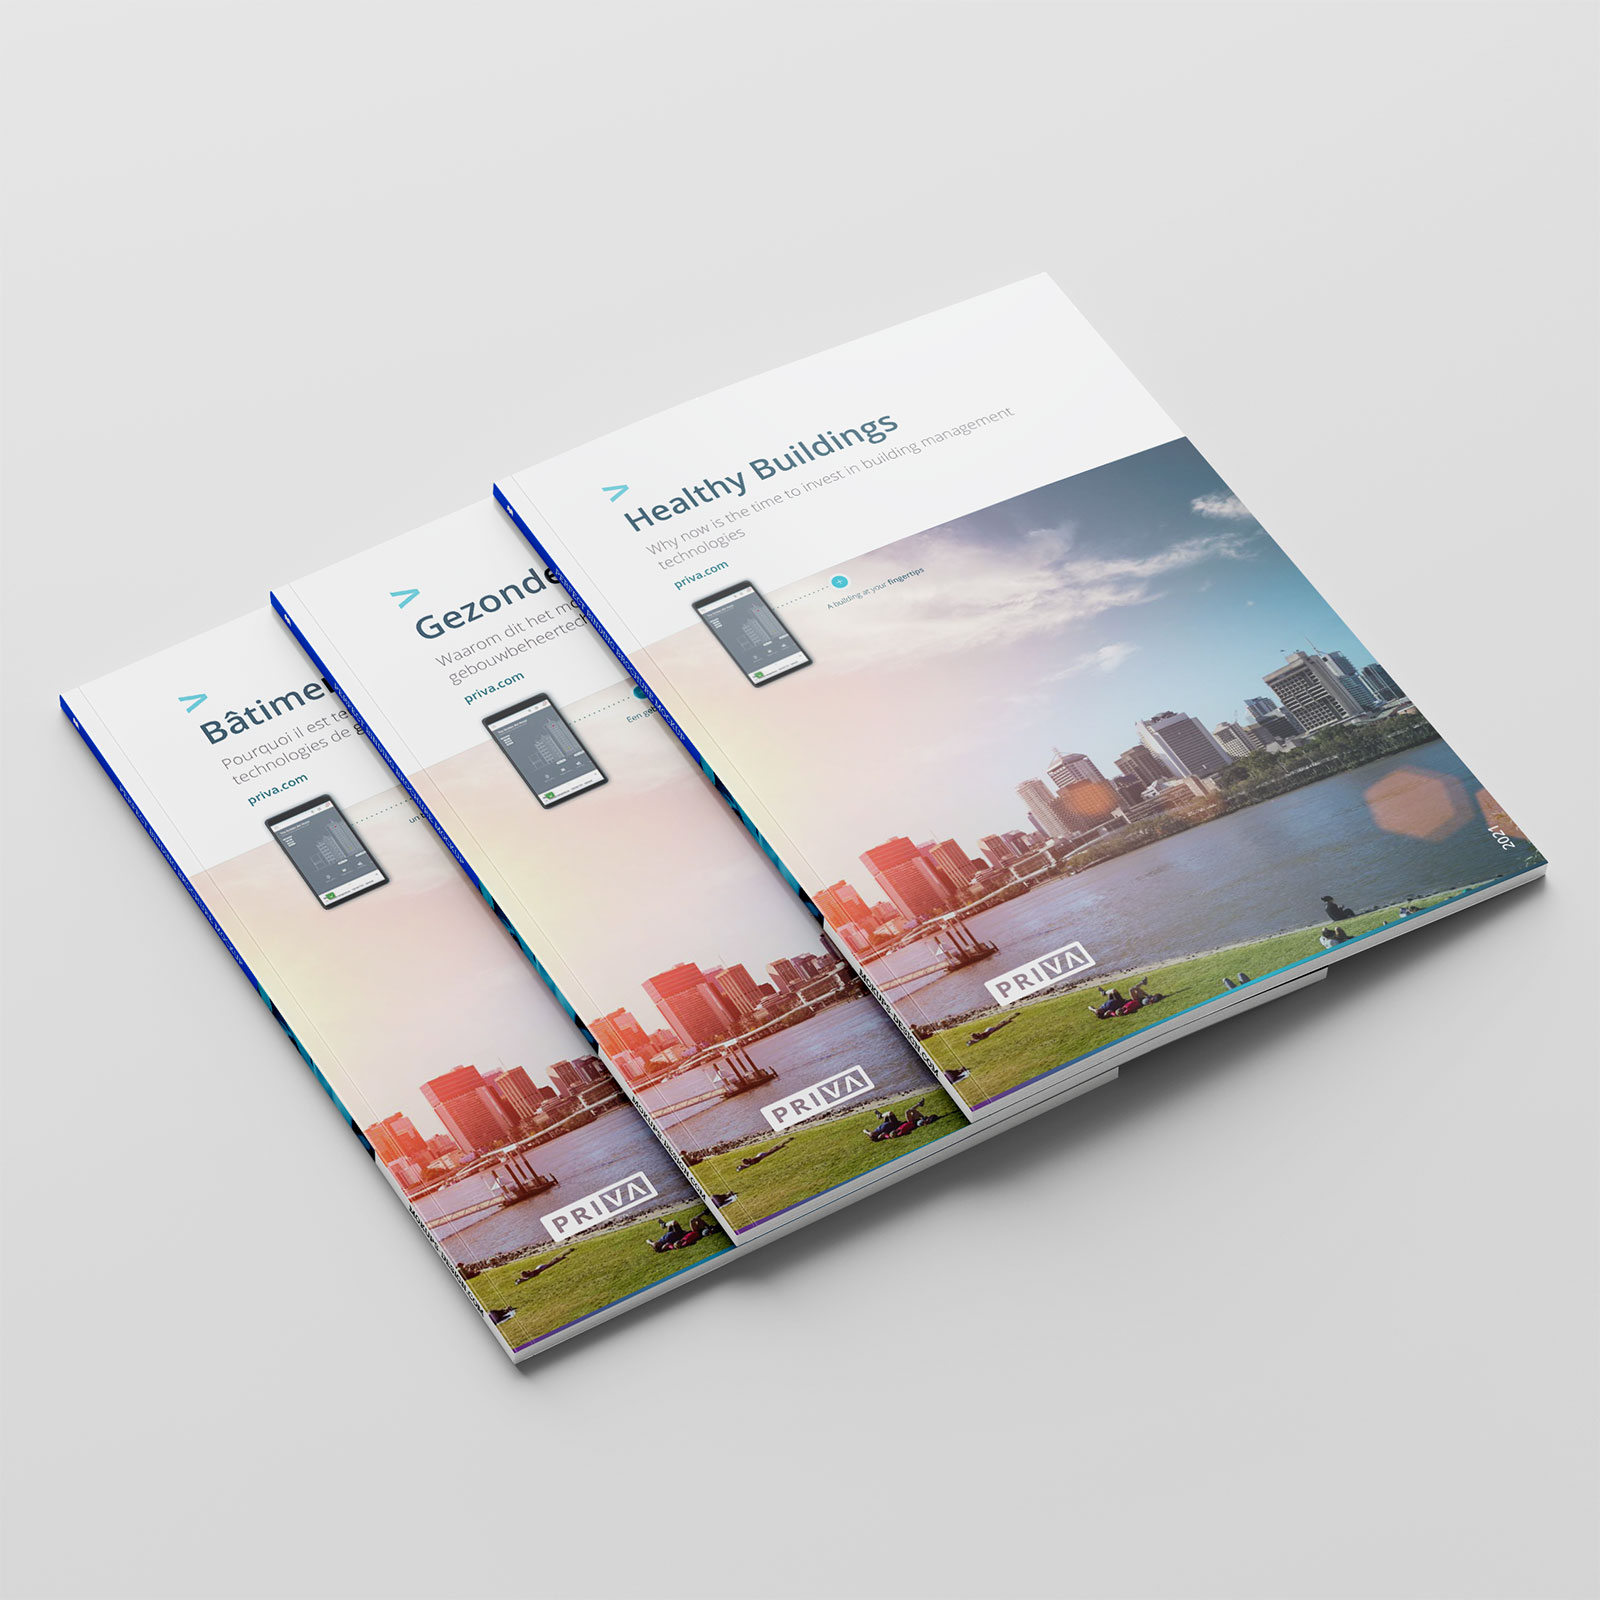 Priva white paper the importance of healthy buildings